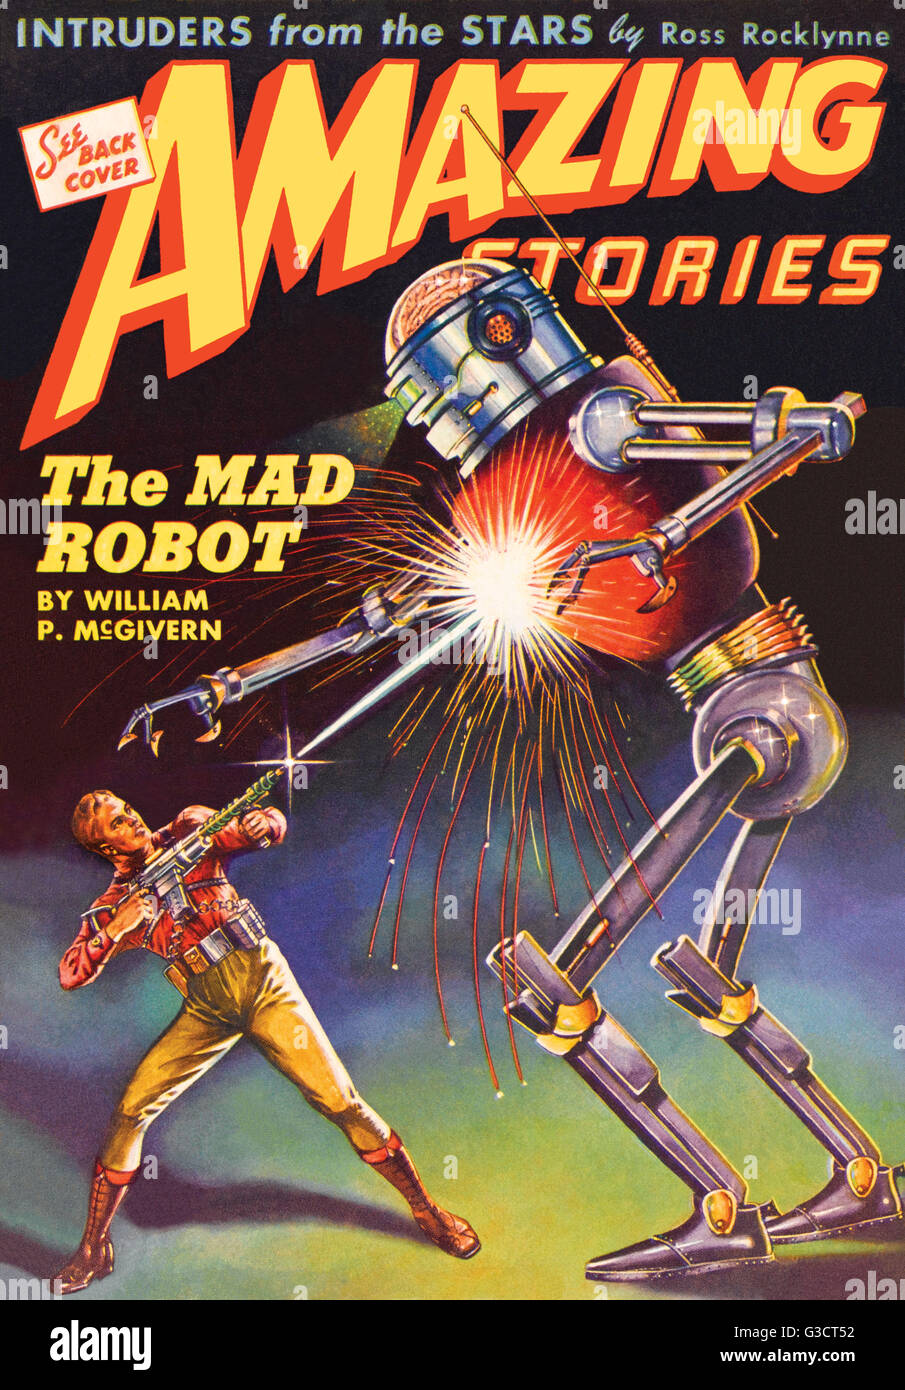 the-mad-robot-by-william-p-mcgivern-a-br